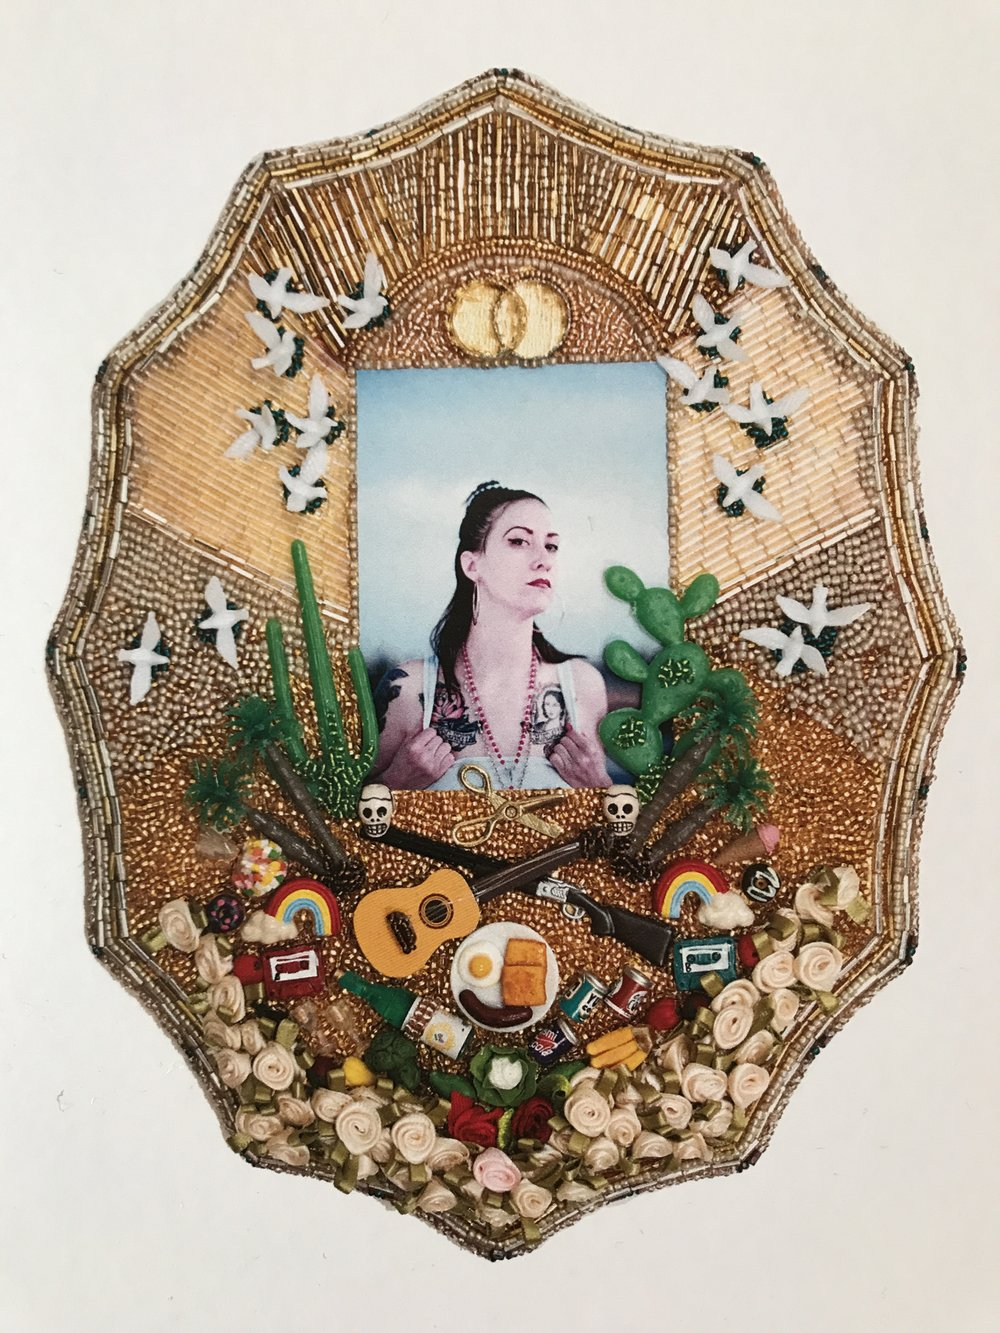 Chingona AKA Libby - Multimedia assemblage (photograph, beads, miniatures), 12